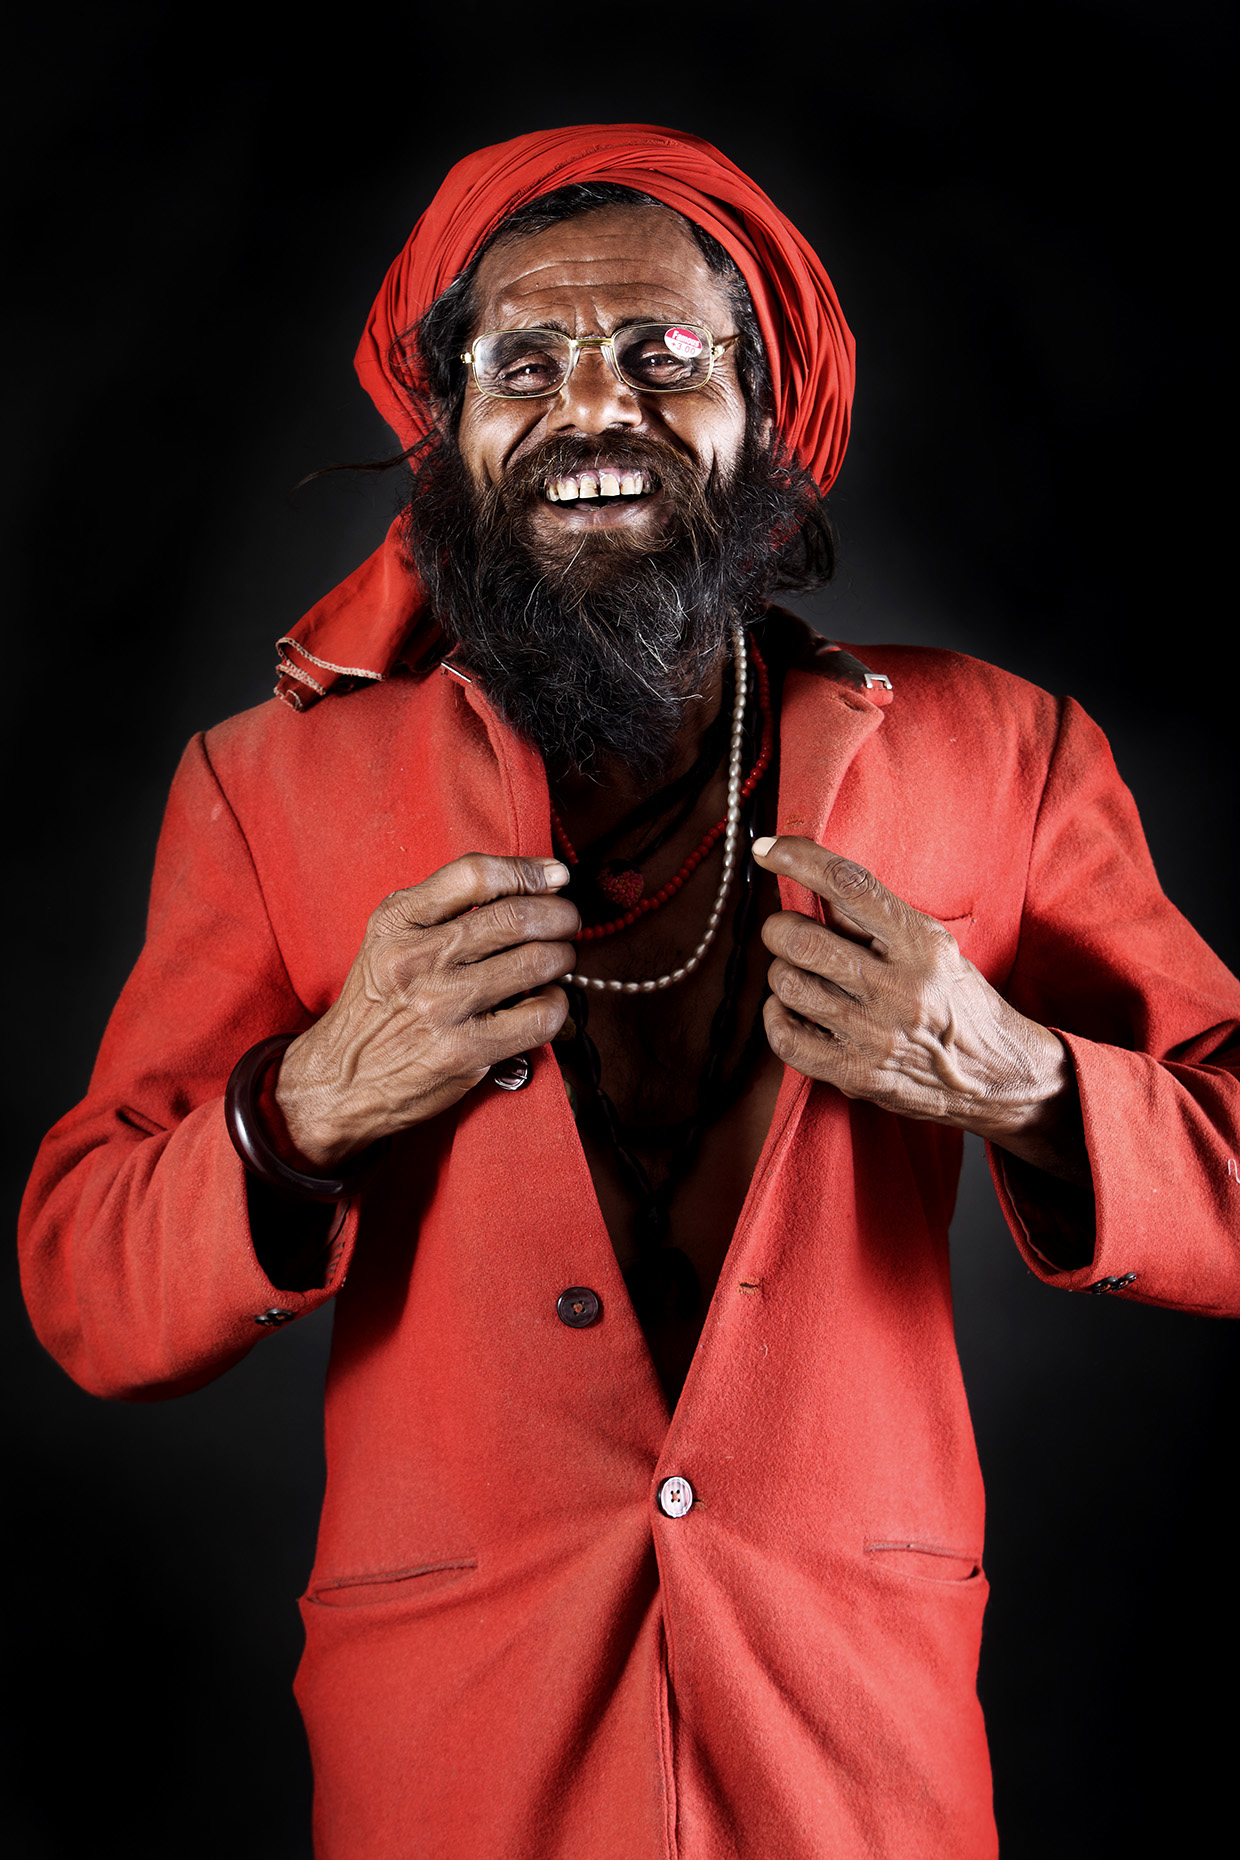 Photo of bearded man with red suit at the Kumbh Mela